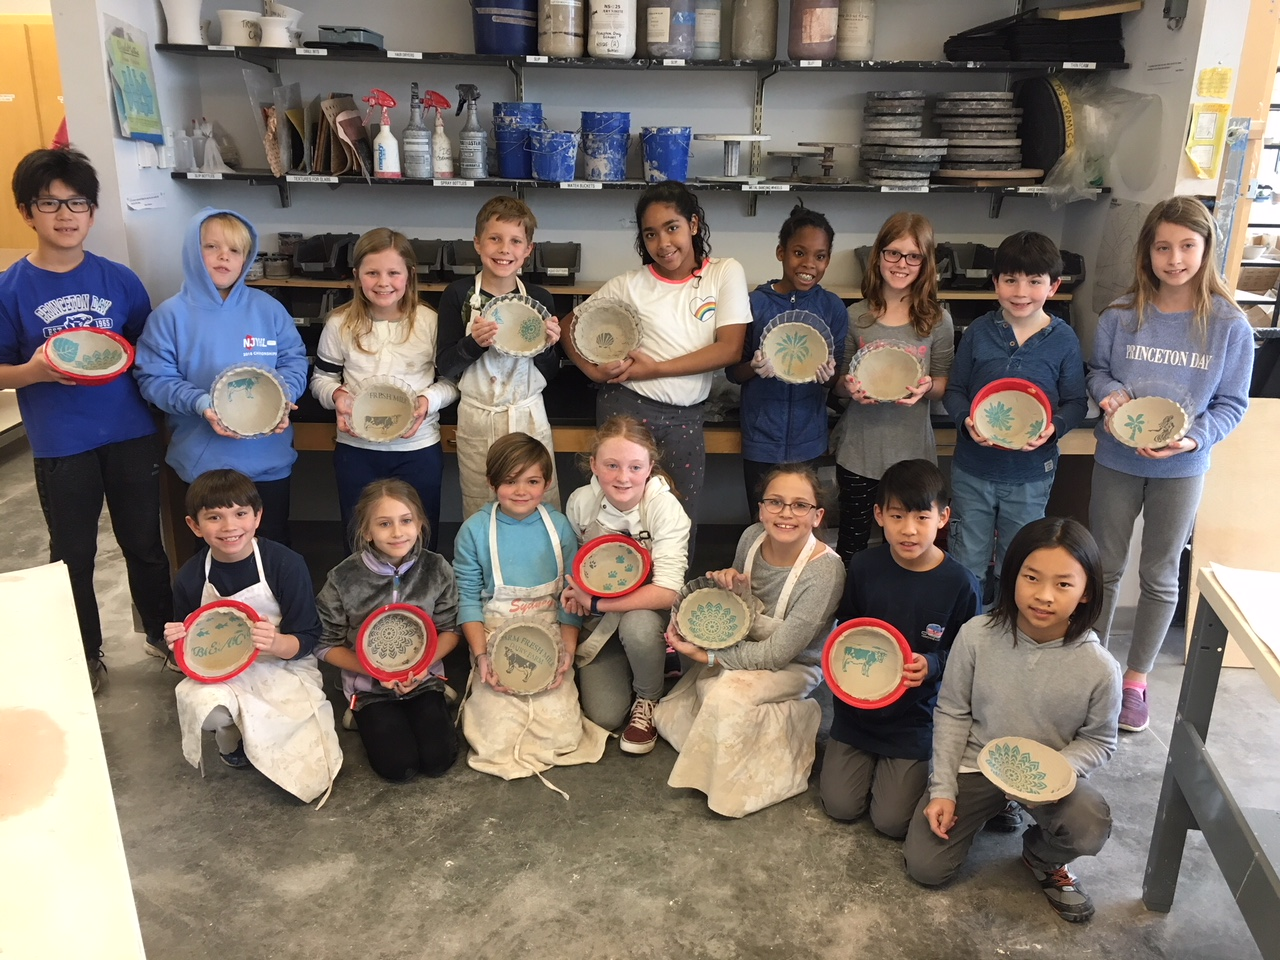 Princeton Stores And Shopping Announcements Dusk To Dawn Control Wiring Diagram For Garage Day School Announces The First Annual Empty Bowls Event A Community Fundraiser Address Hunger In Our Local